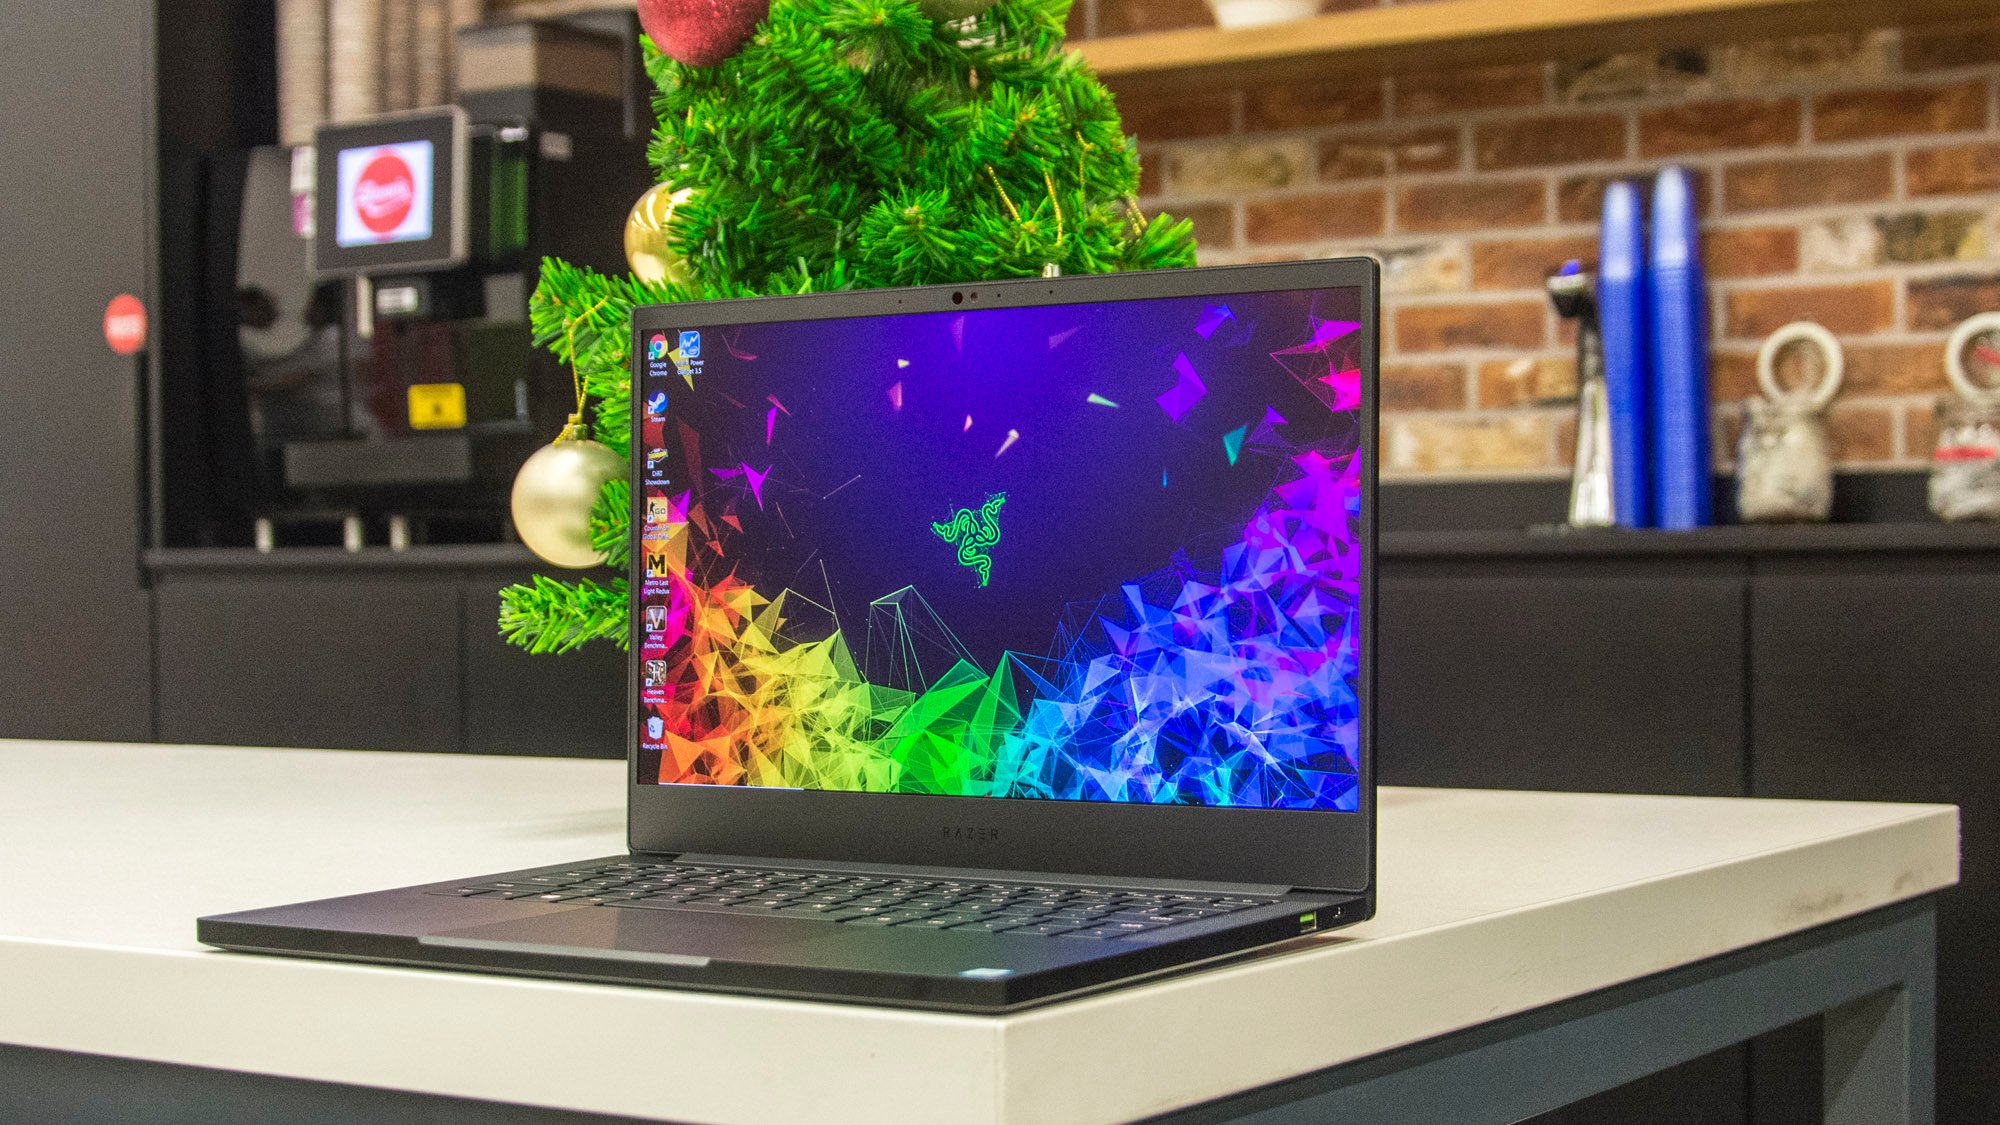 Razer Blade Stealth 13 review: A sublime ultraportable laptop with